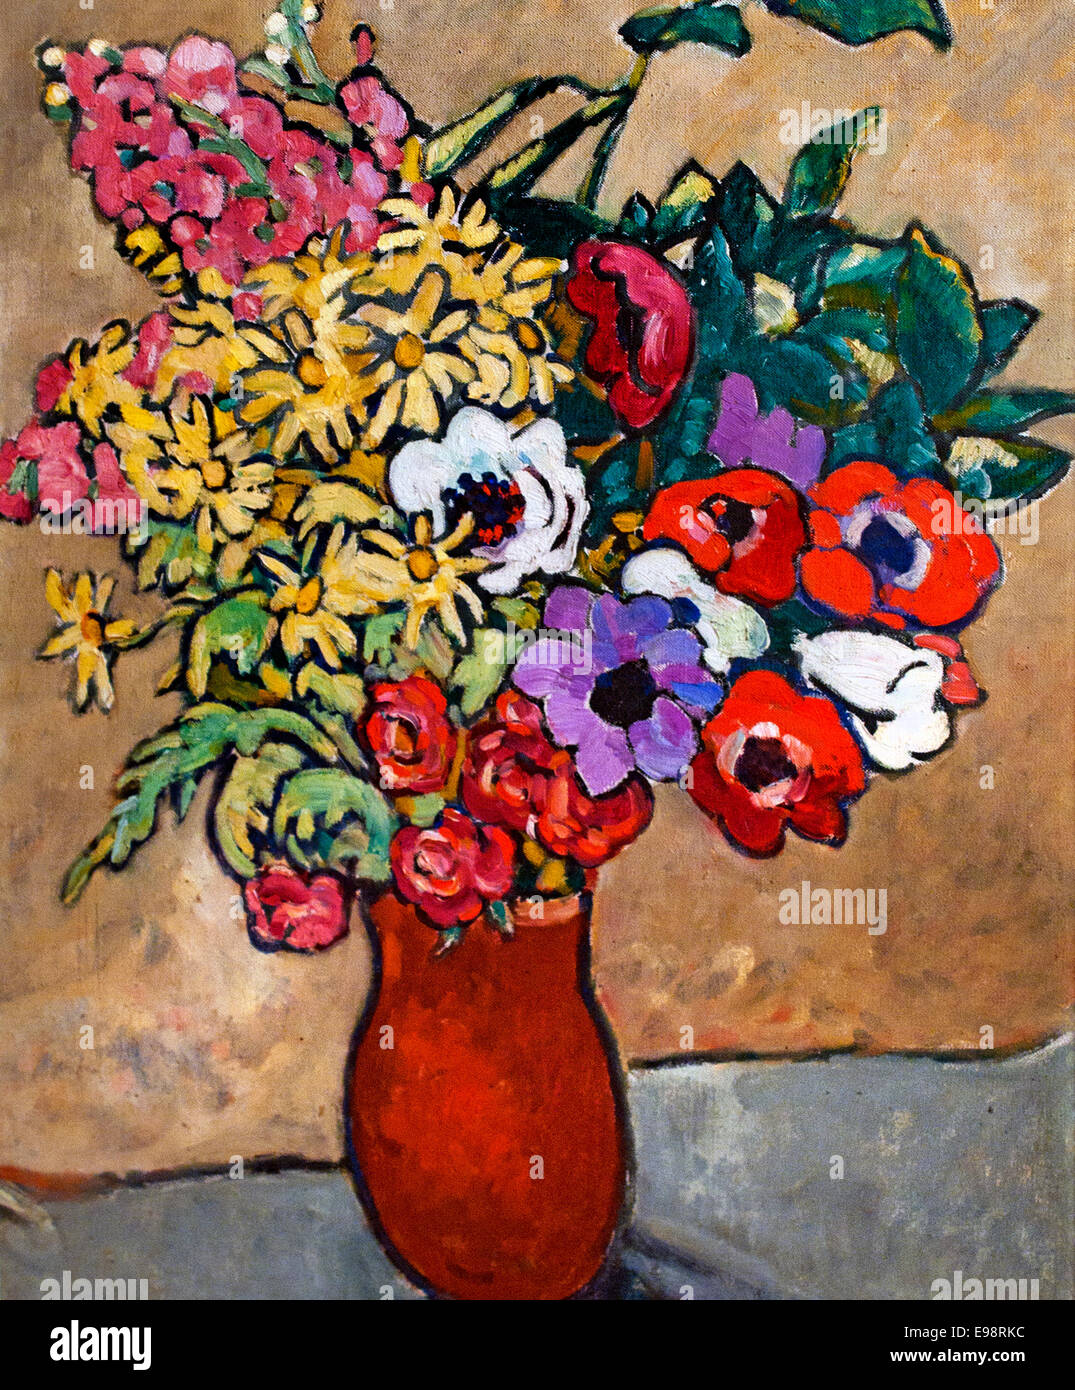 Anemones 1921 Louis Valtat France French - Stock Image